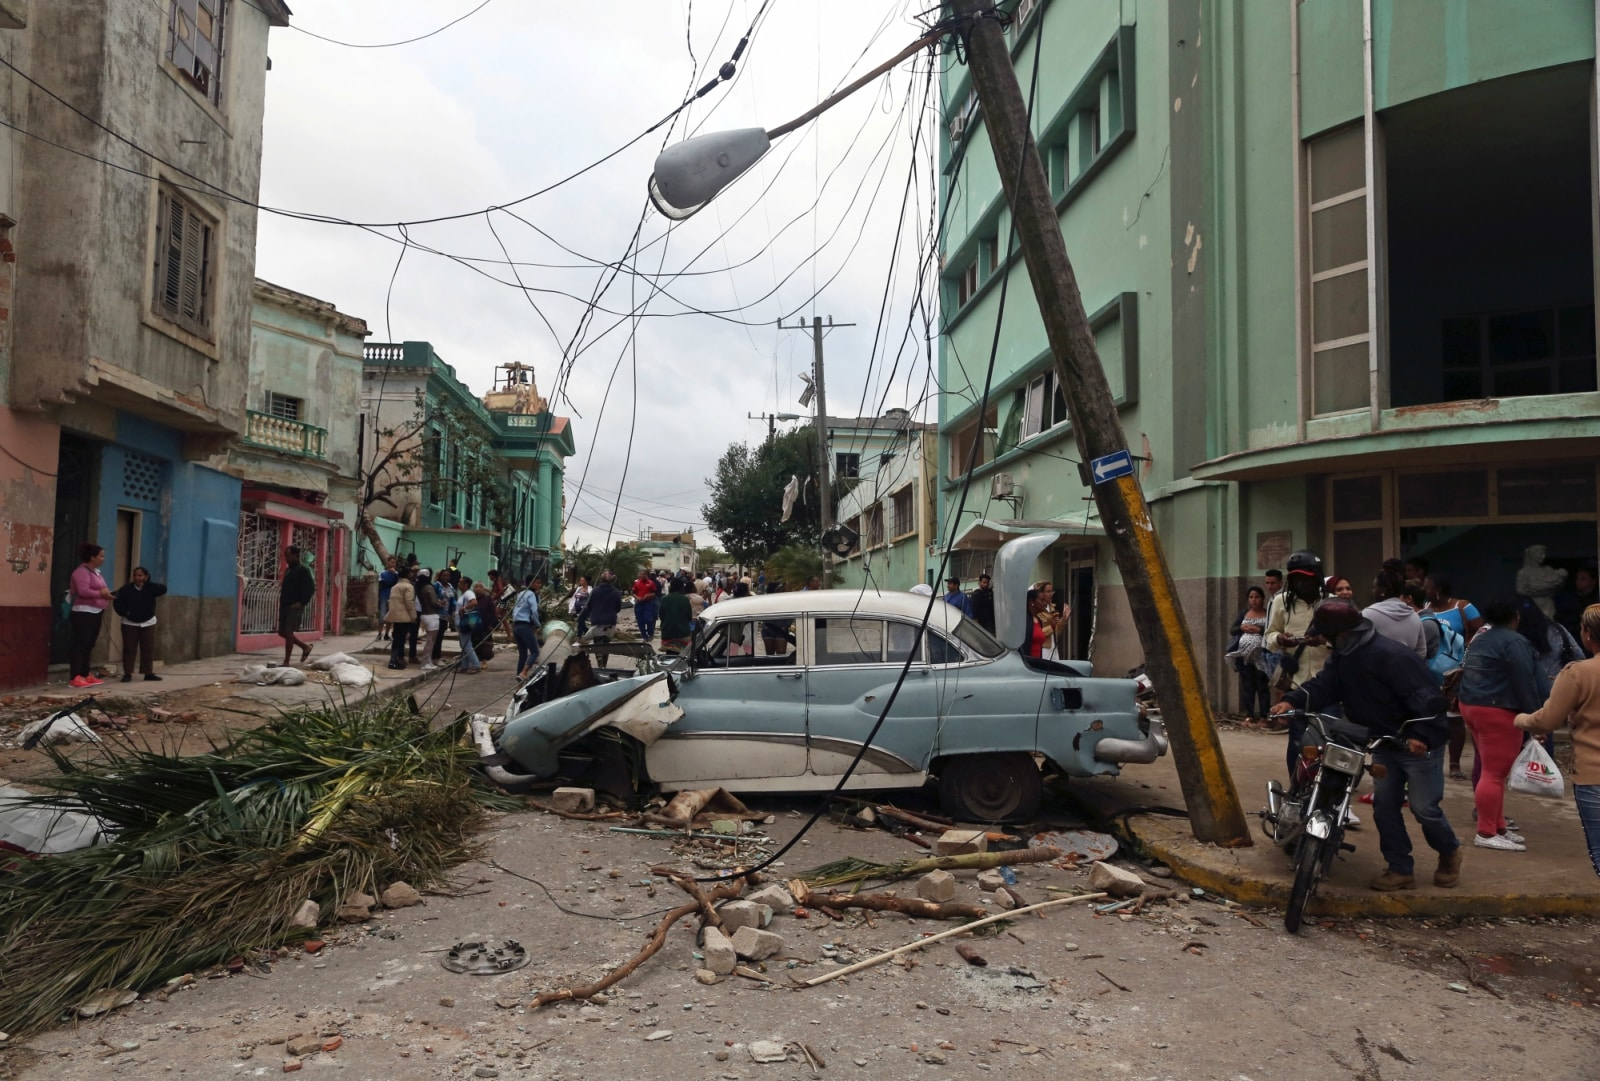 People walk past debris after a tornado ripped through a neighbourhood in Havana, Cuba January 28, 2019. REUTERS/Fernando Medina